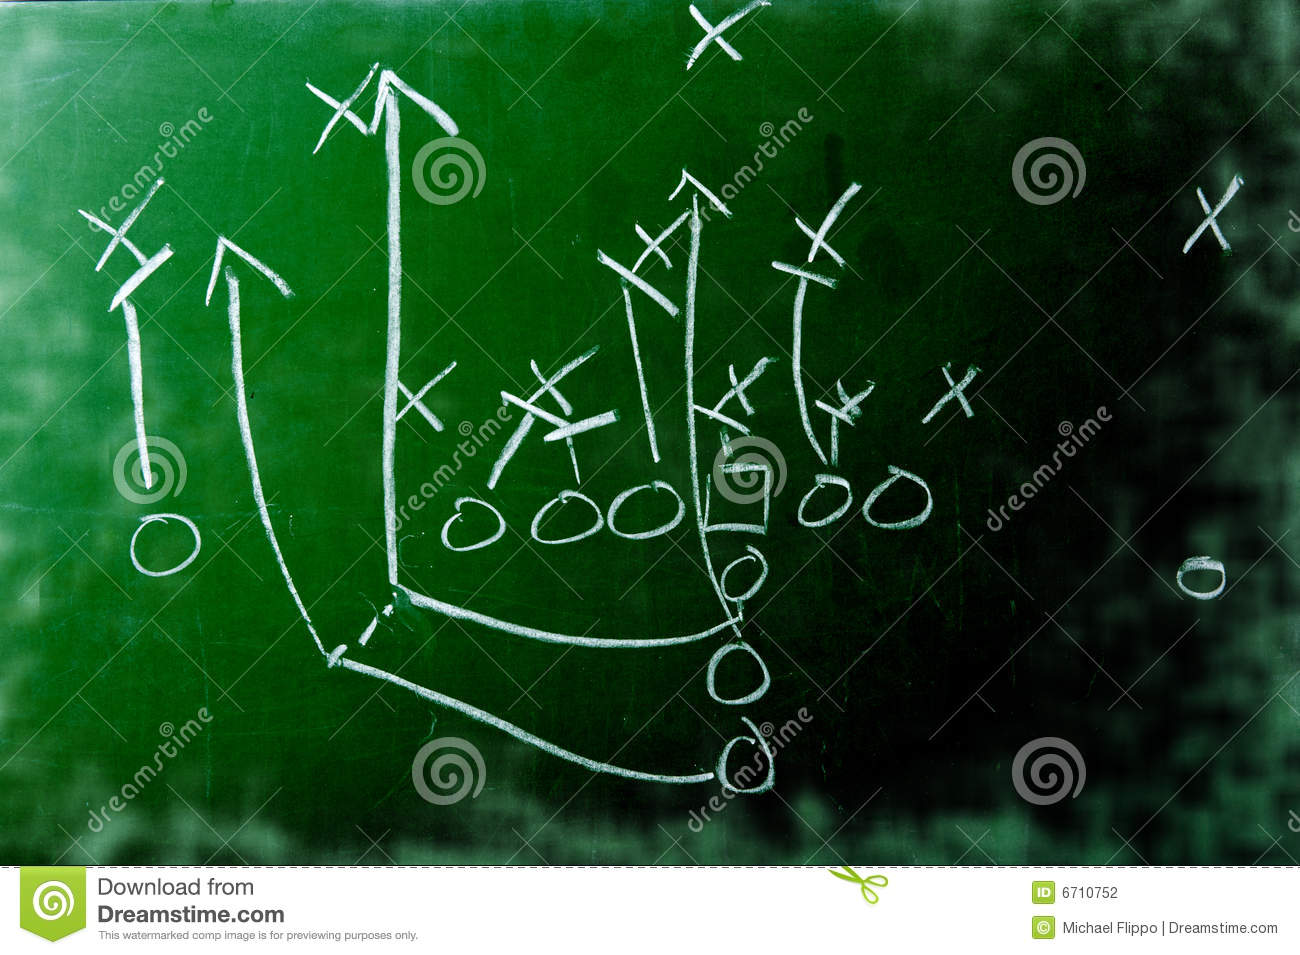 Football play diagram on chalkboard stock photo image of diagram football play diagram on chalkboard pooptronica Images